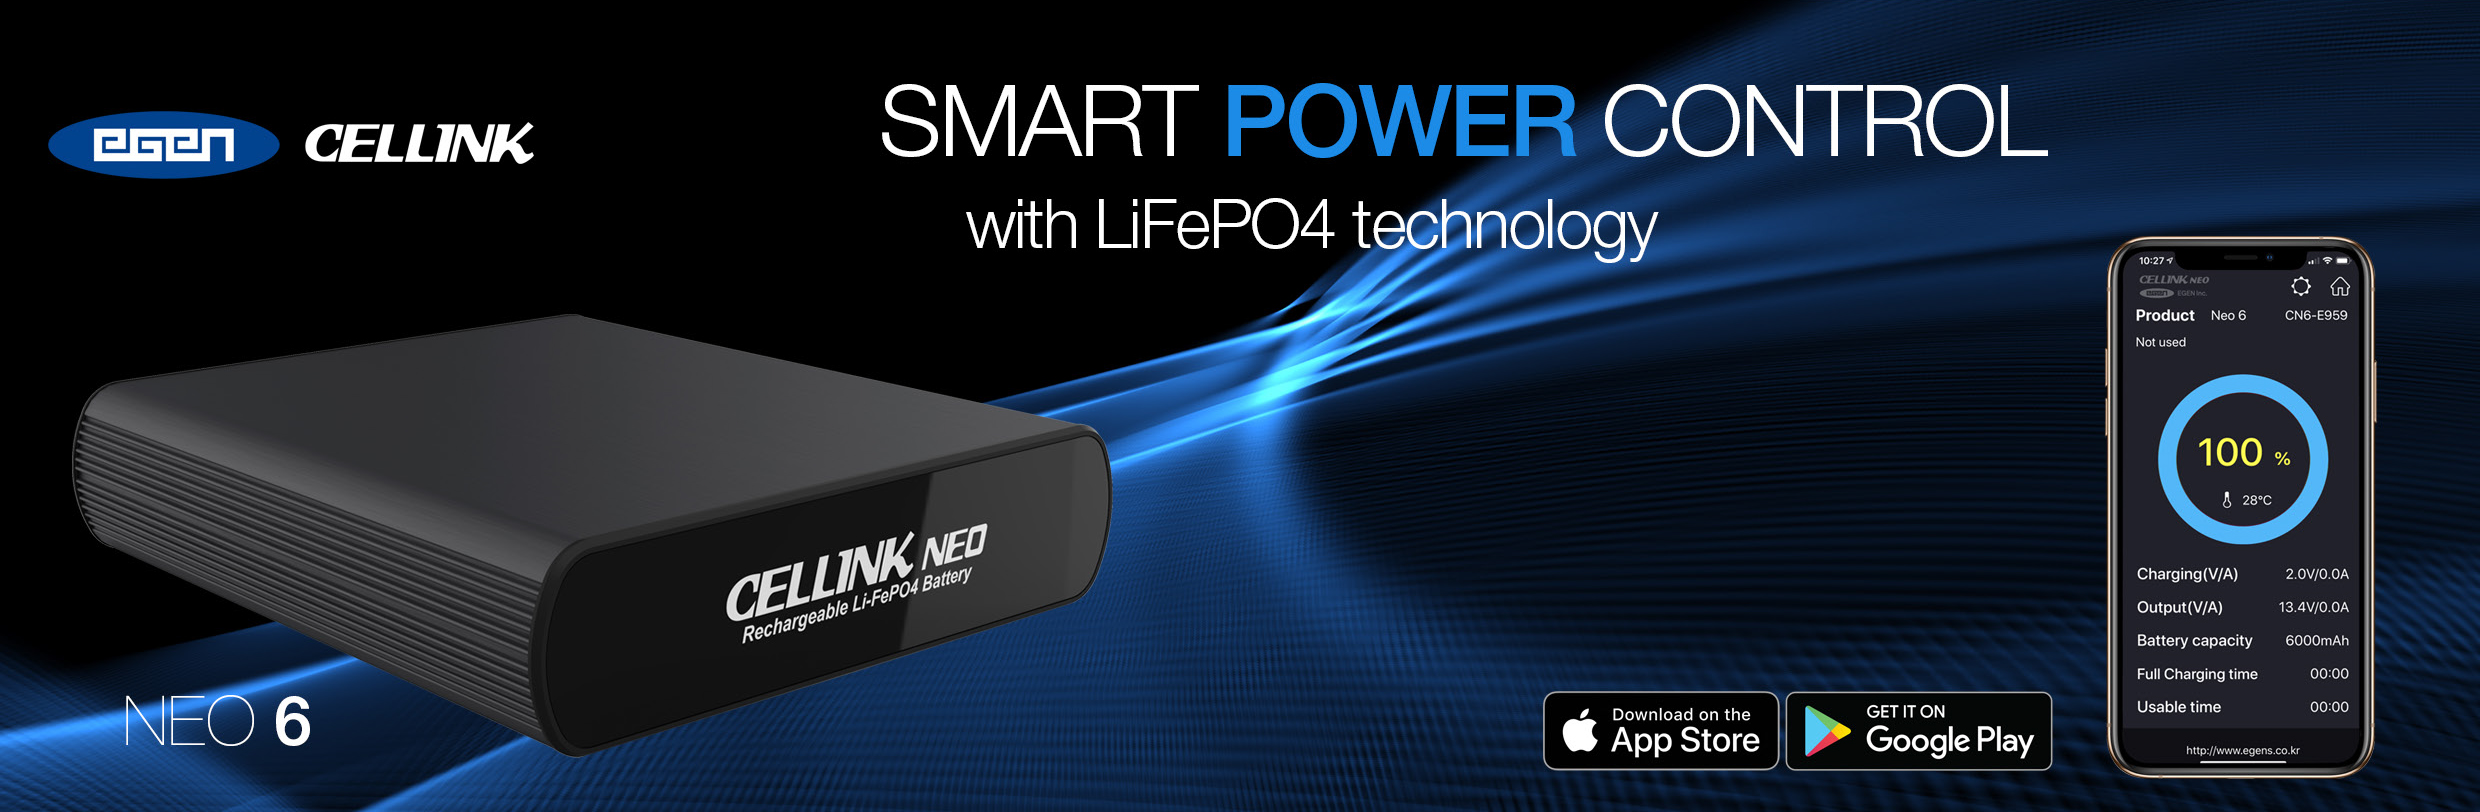 CELLINK NEO 6 The Ultimate Supplementary Dash Cam Power Source.